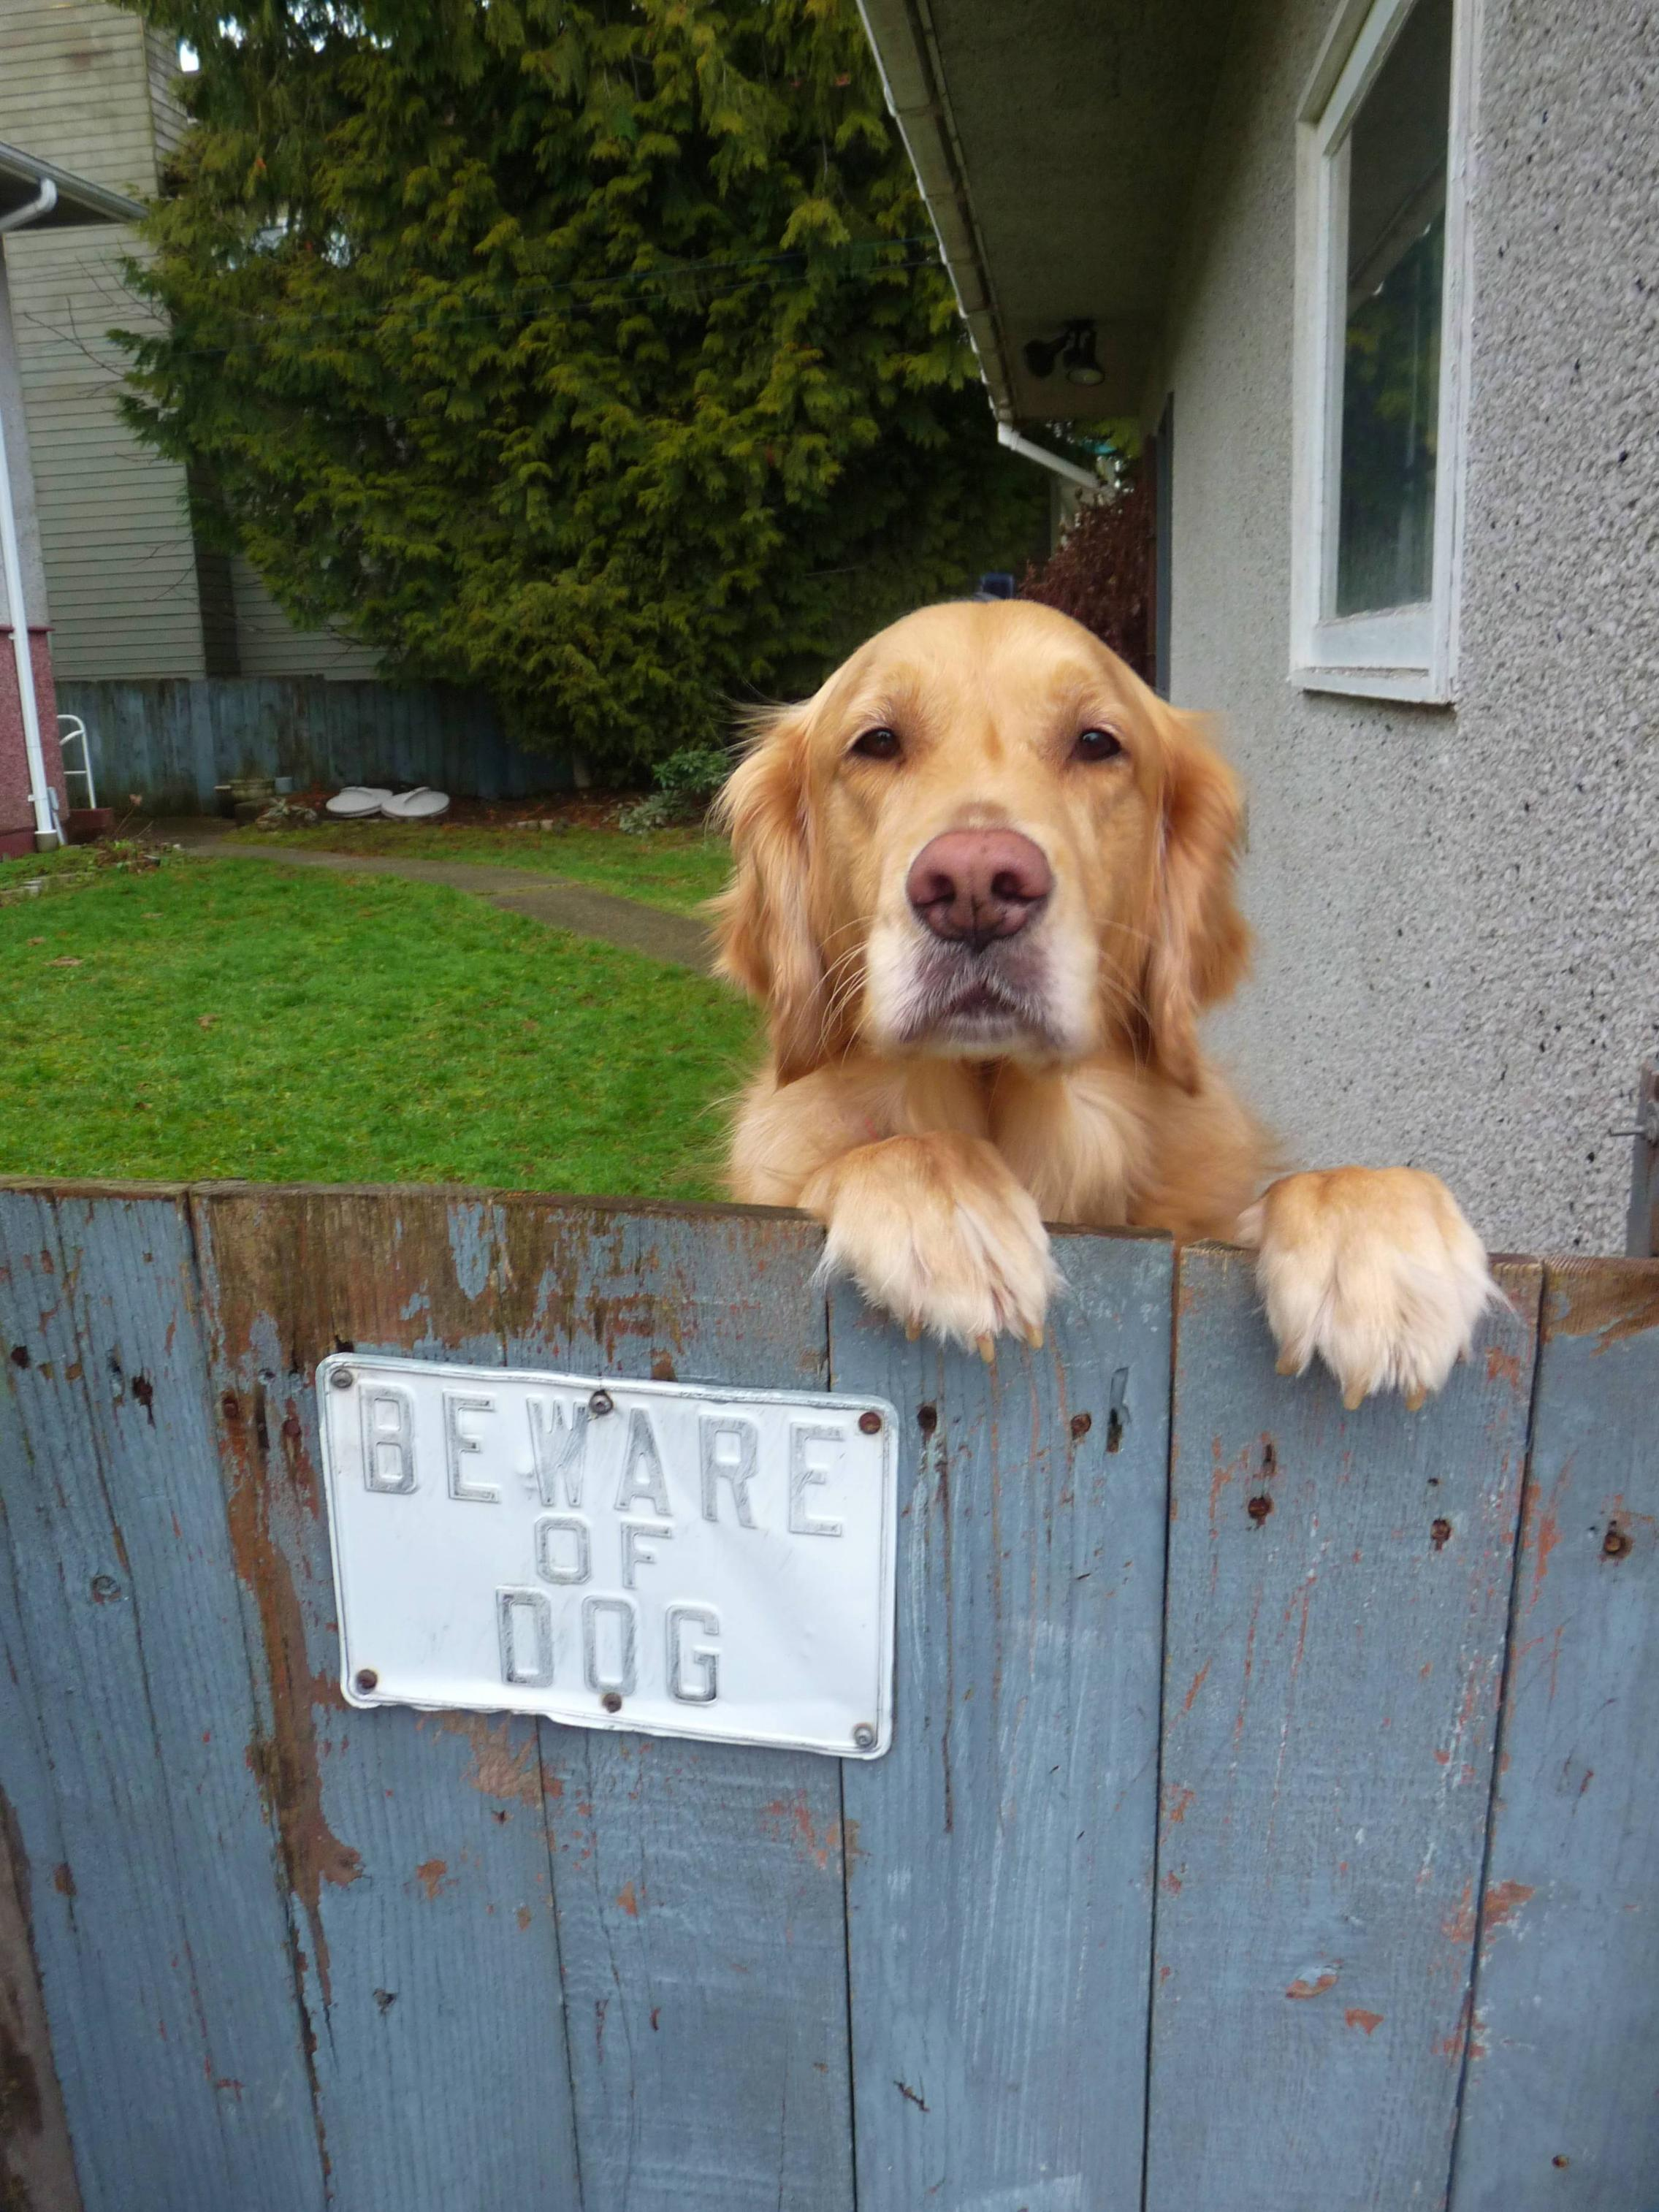 Dog-and-be-careful-of-dog sign